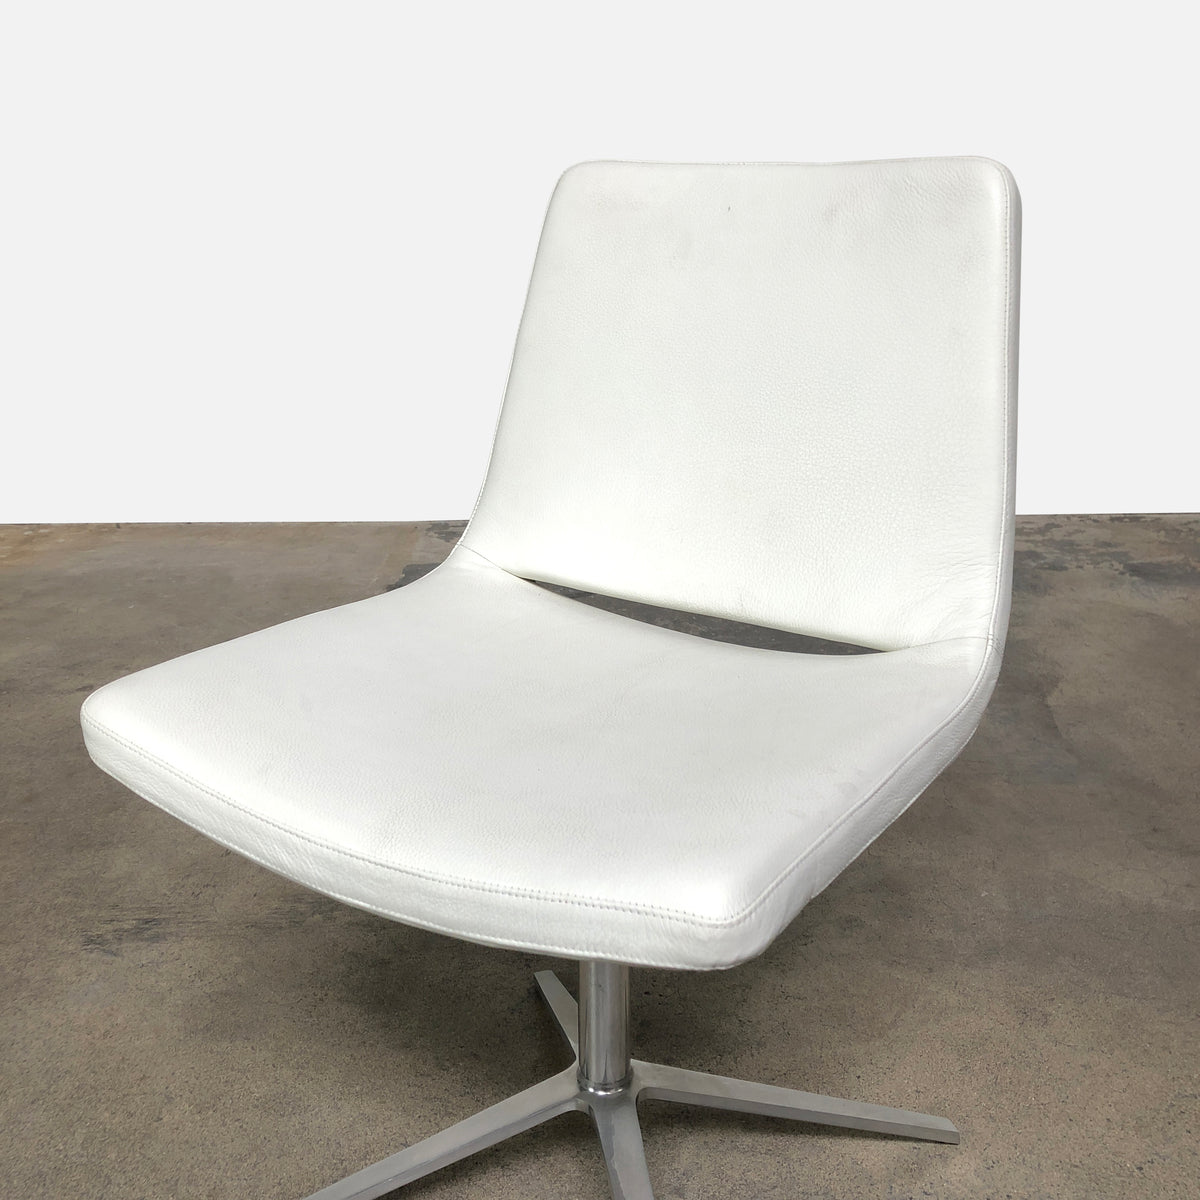 B&B Italia White Leather Metropolitan Dining Chairs | LA Consignment